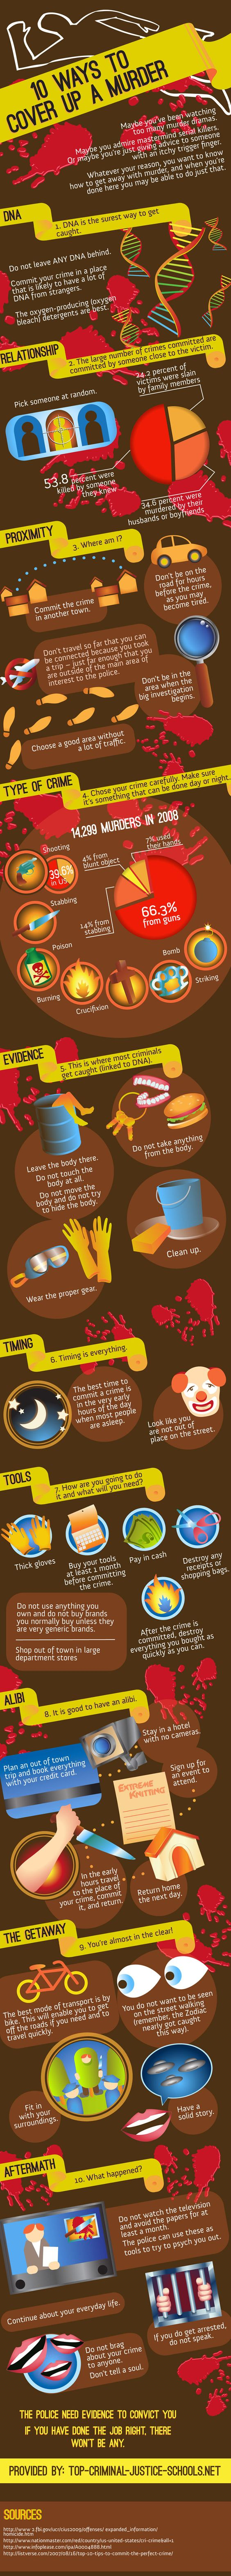 10 Ways to Cover Up a Murder Infographic with forensics